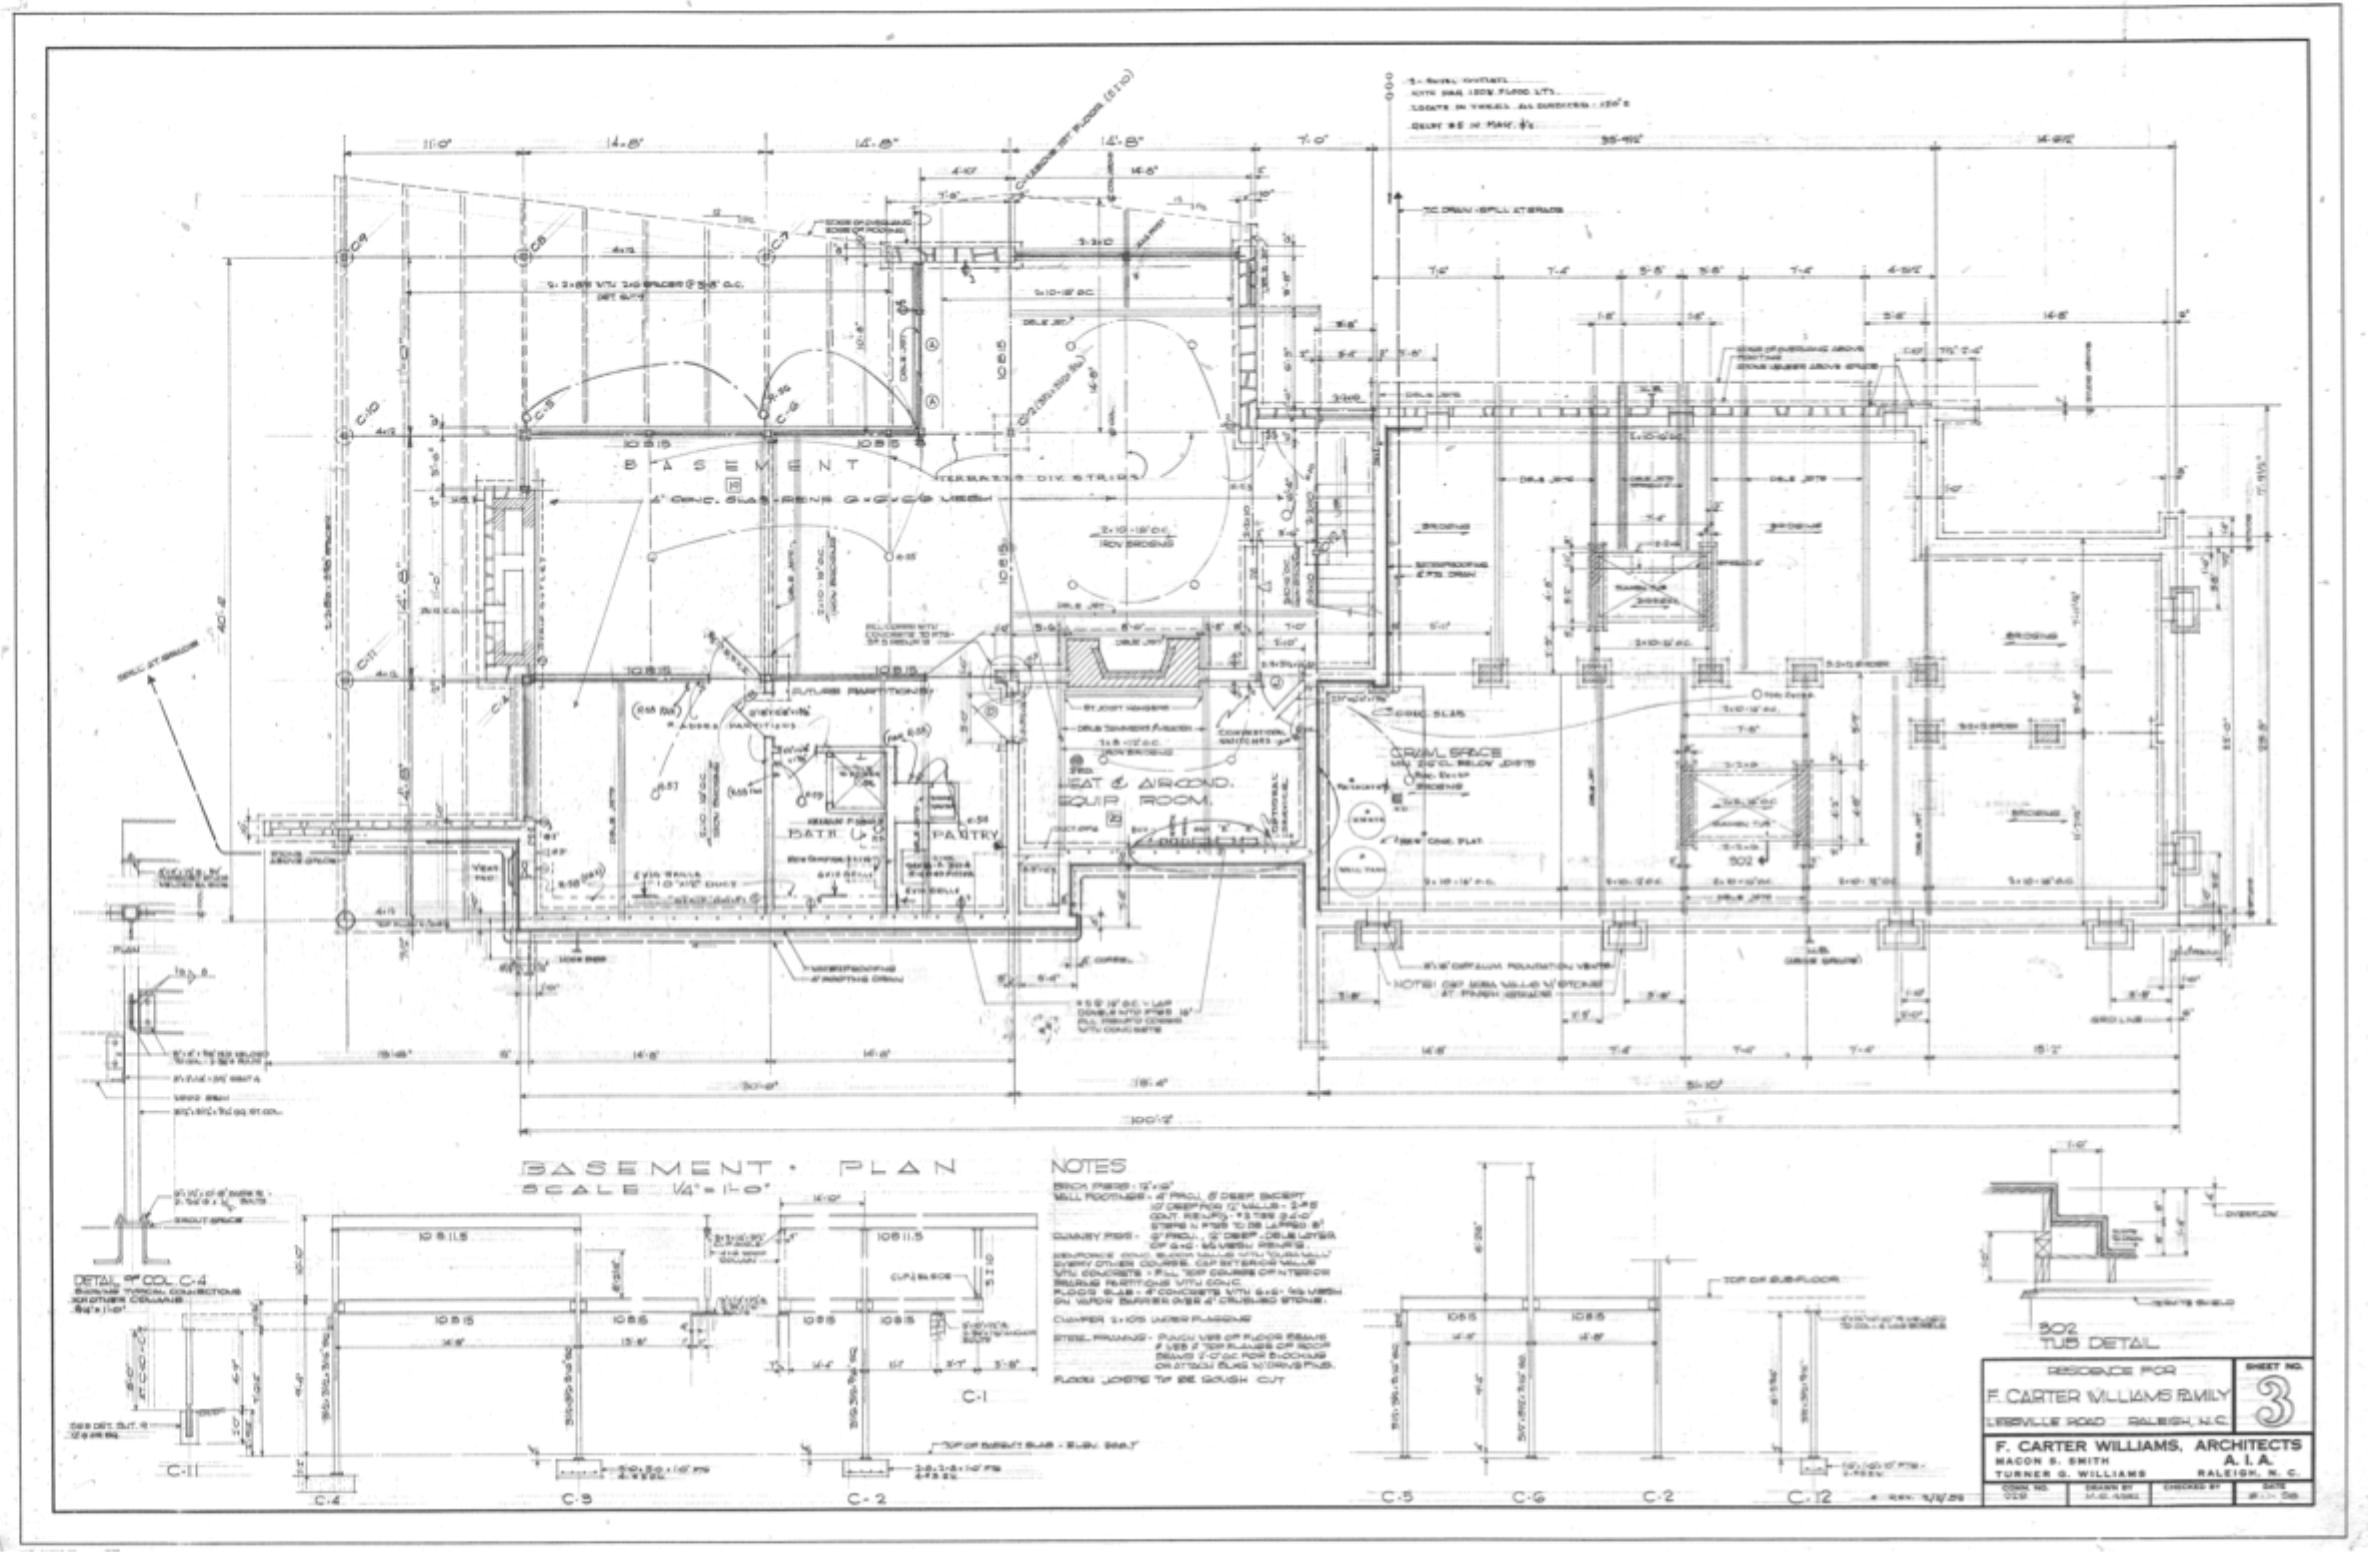 Basement ORIGINAL Plan from 1958